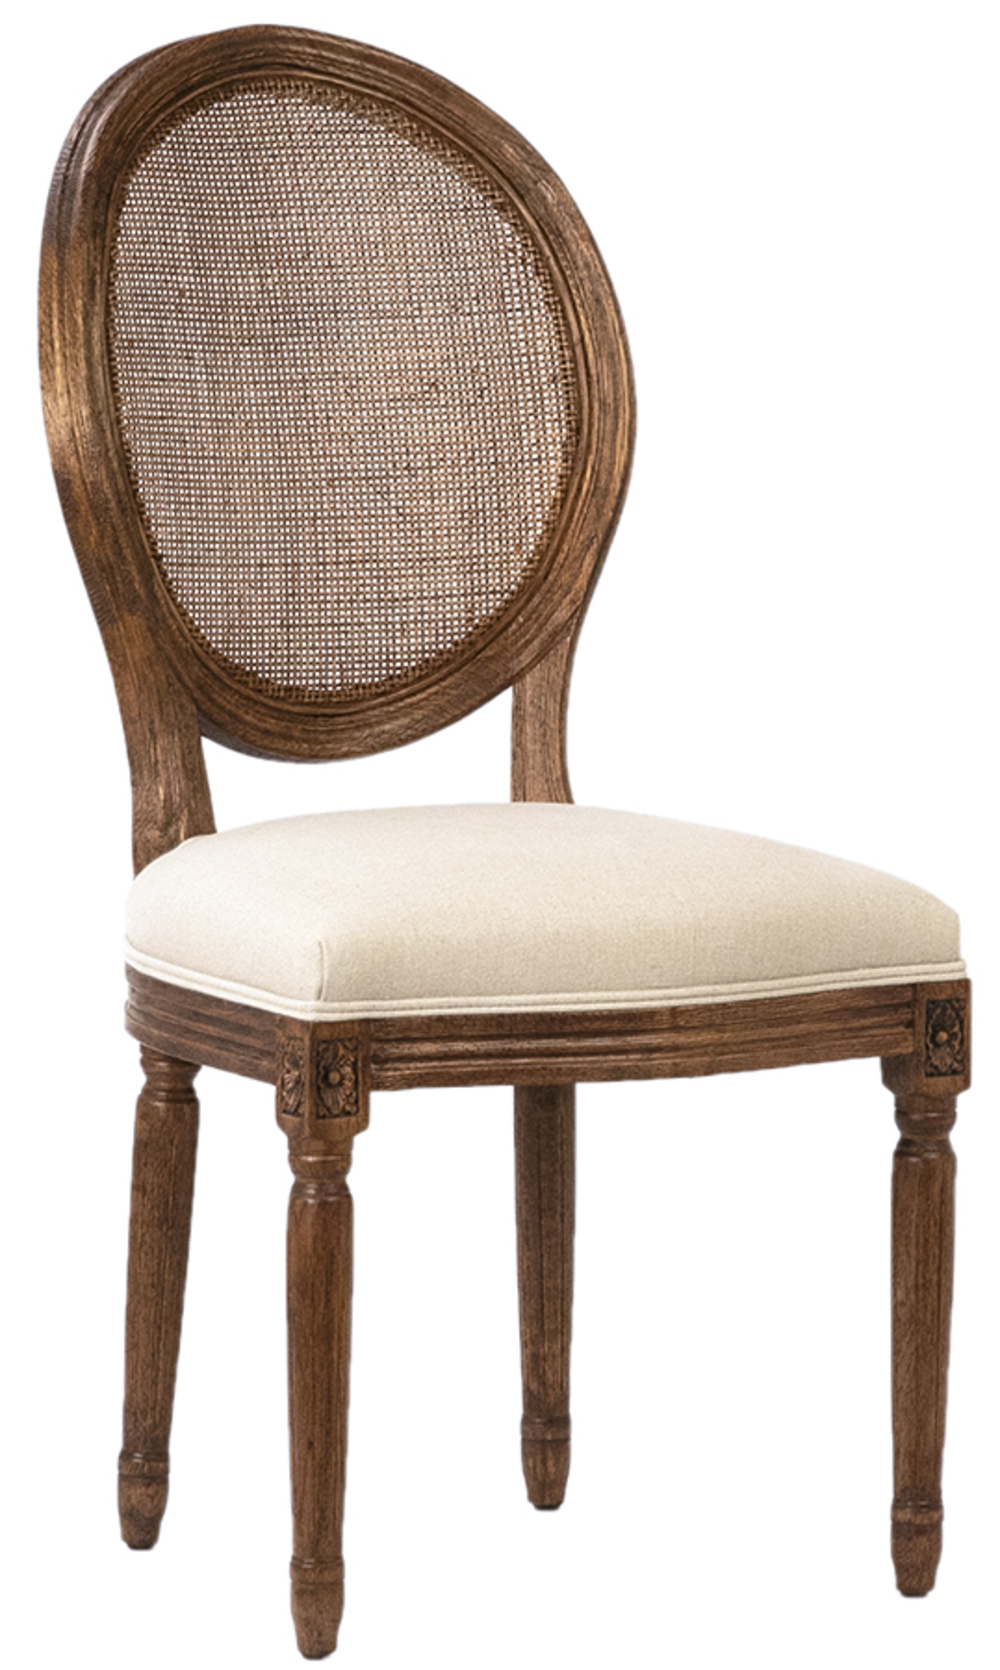 Dovetail Furniture - Alice Dining Chair with Rattan Back